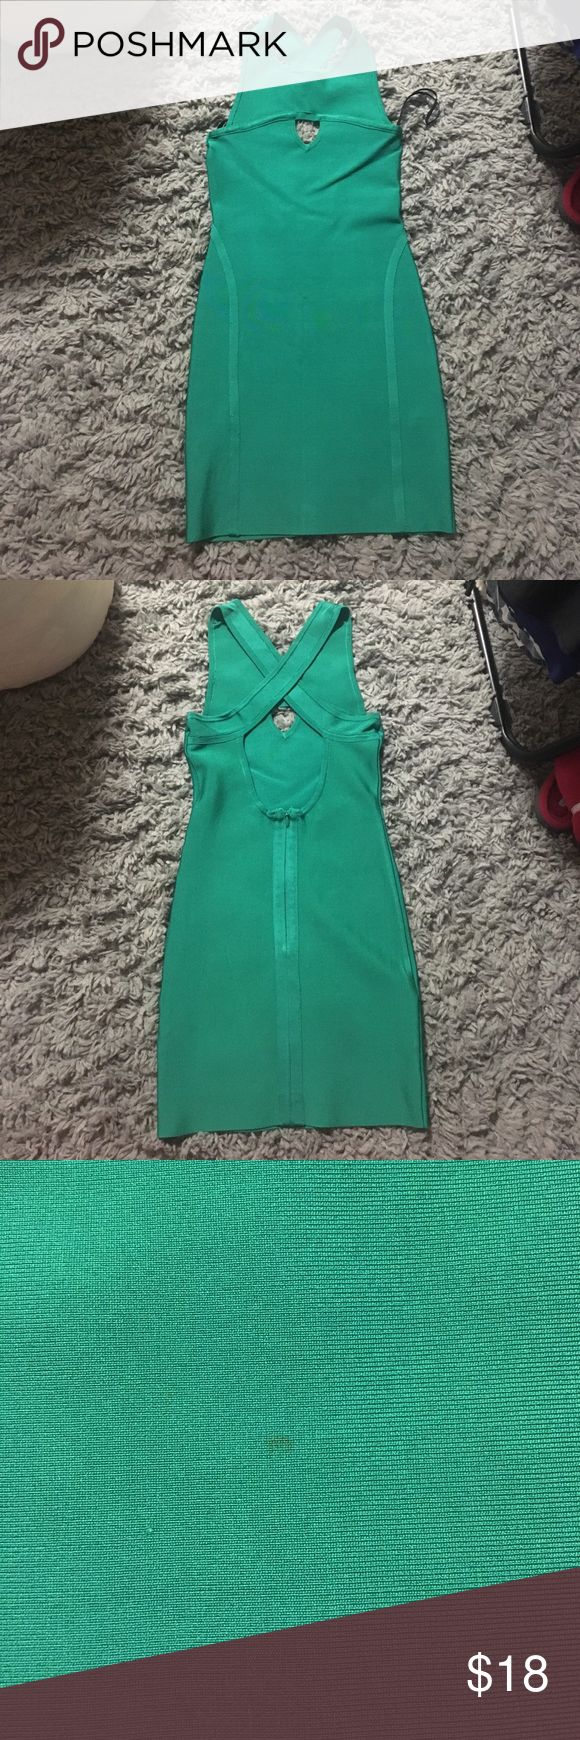 Bebe bodycon with criss cross back dress Cute jade green bodycon dress from Bebe. Only worn a few times and looks brand new. Has a keyhole in the front, criss cross straps in the back and then opens up, has a hook and eye zipper closure in the back. There is a small stain on the front but it is t even noticeable, just a very very tiny spot. Perfect for a night out! bebe Dresses Mini